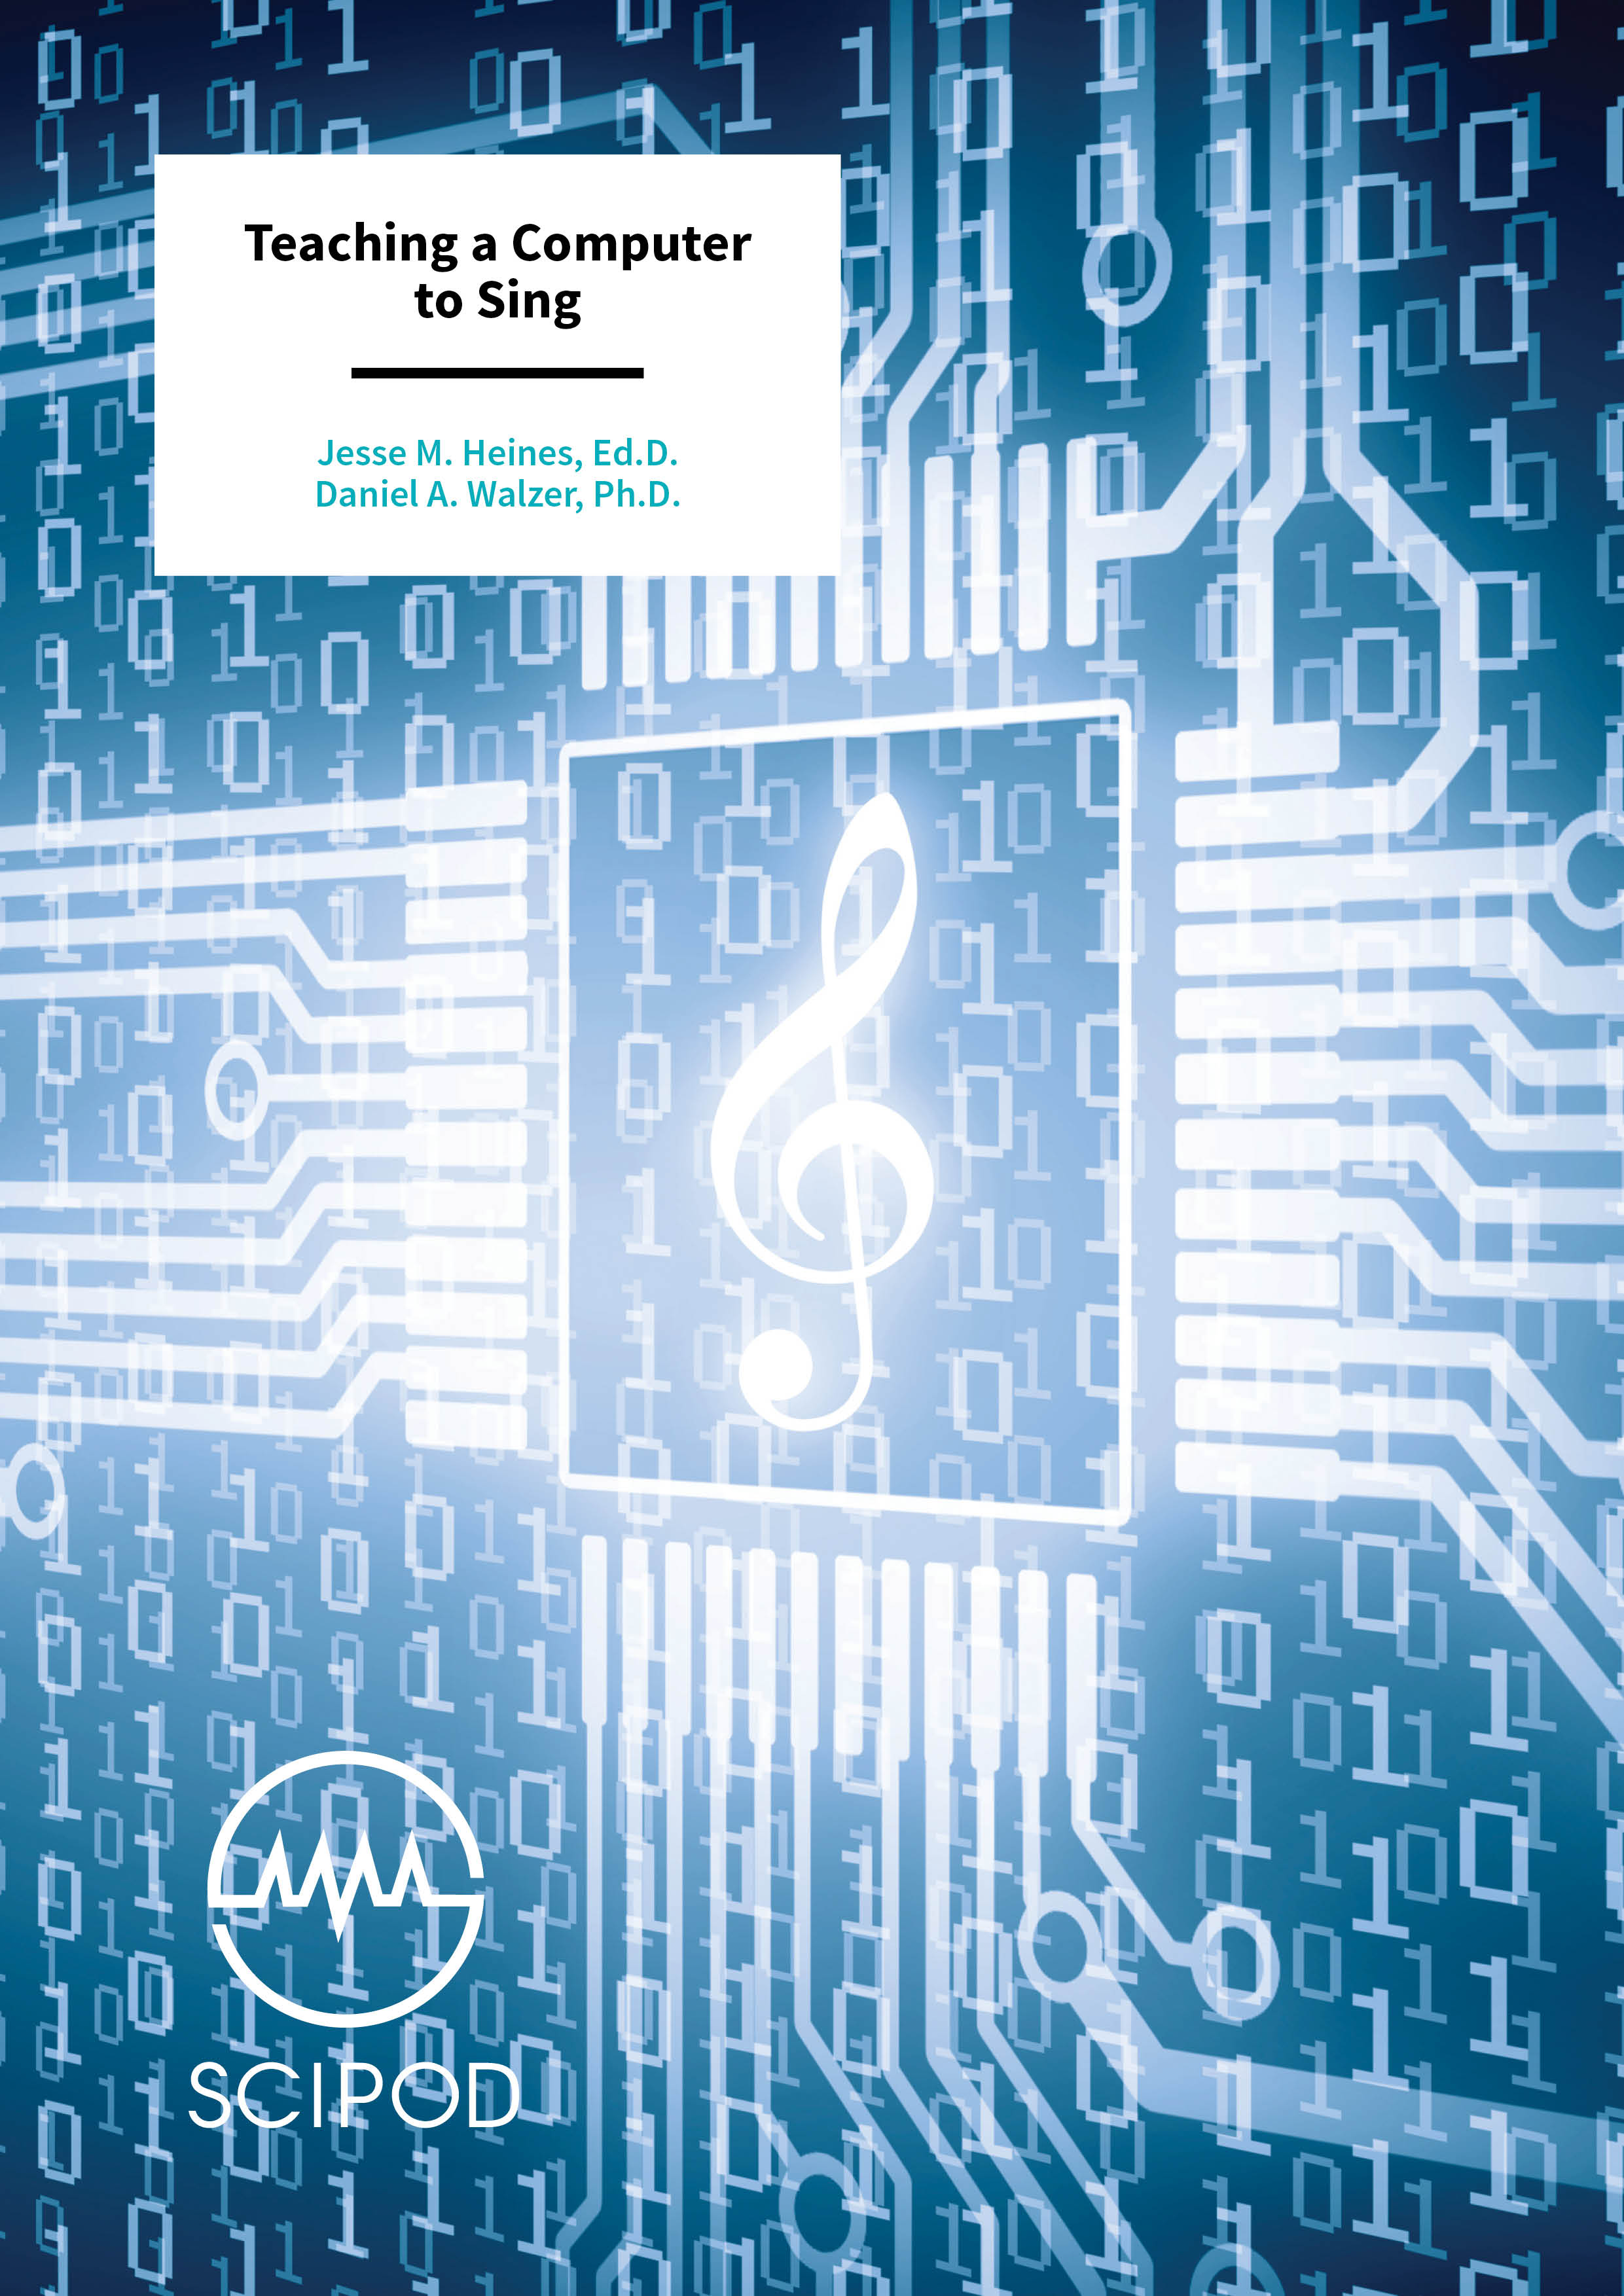 Teaching a Computer to Sing – Jesse M. Heines and Daniel A. Walzer